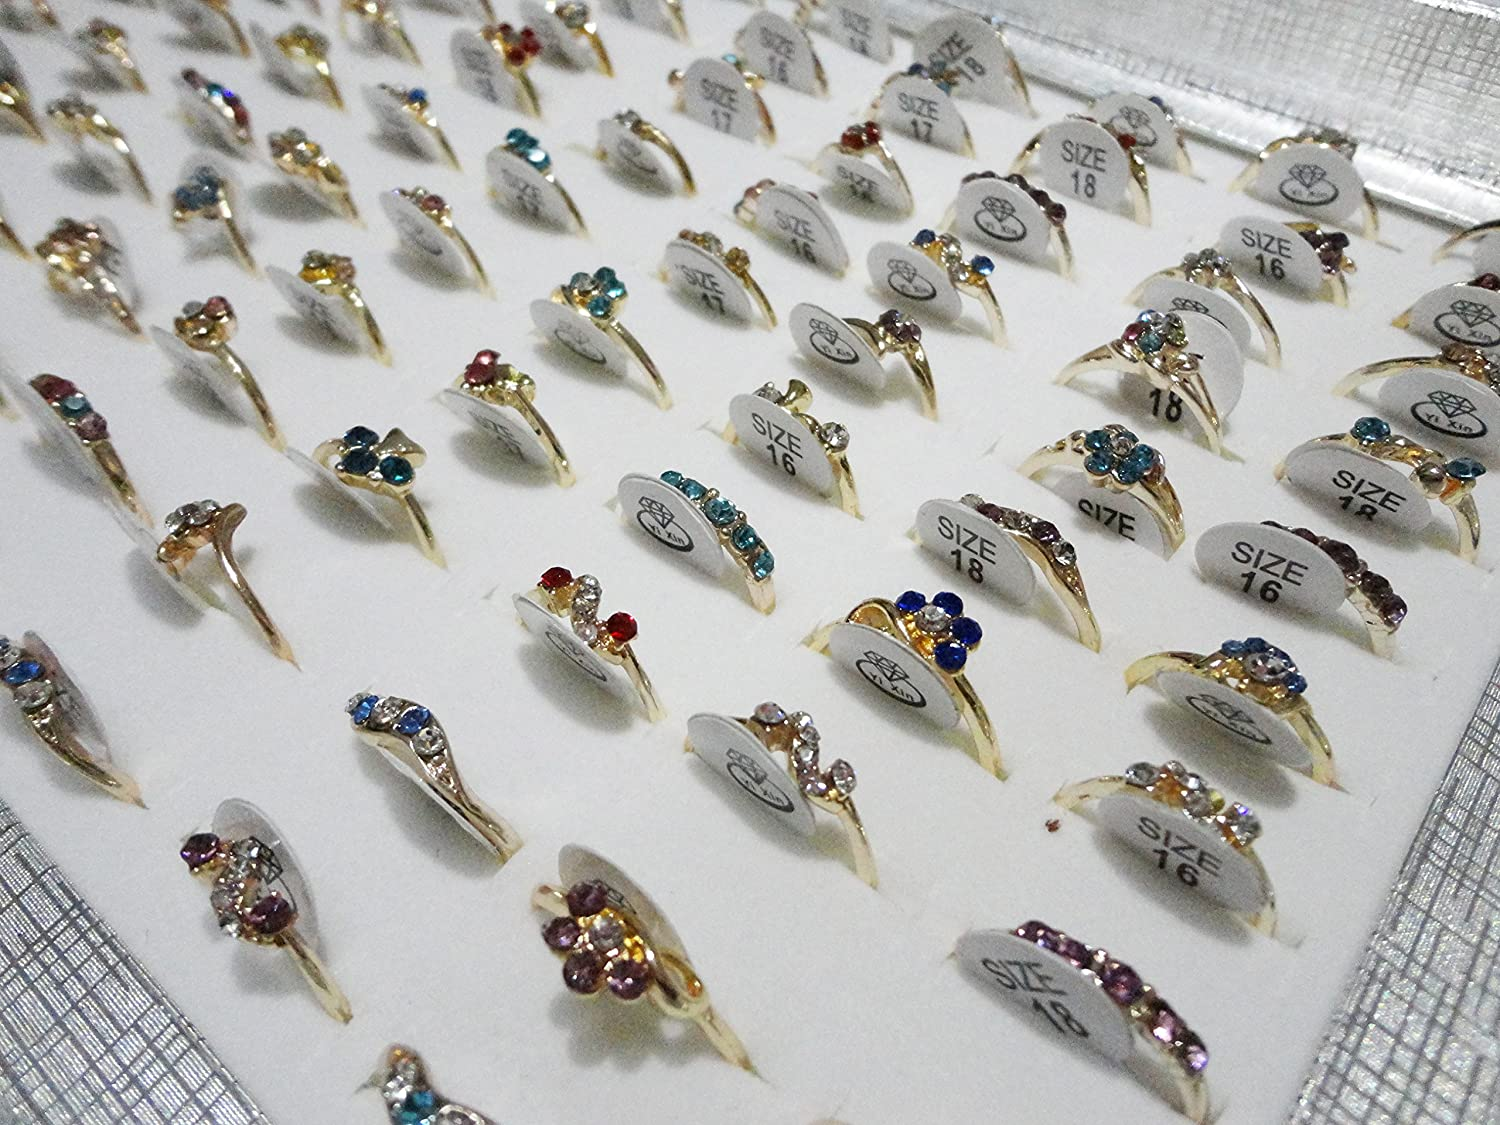 AIHIQI Wholesale Lots 100pcs Colorful Rhinestone Mixed Style Finger Rings for Women Girl Gift